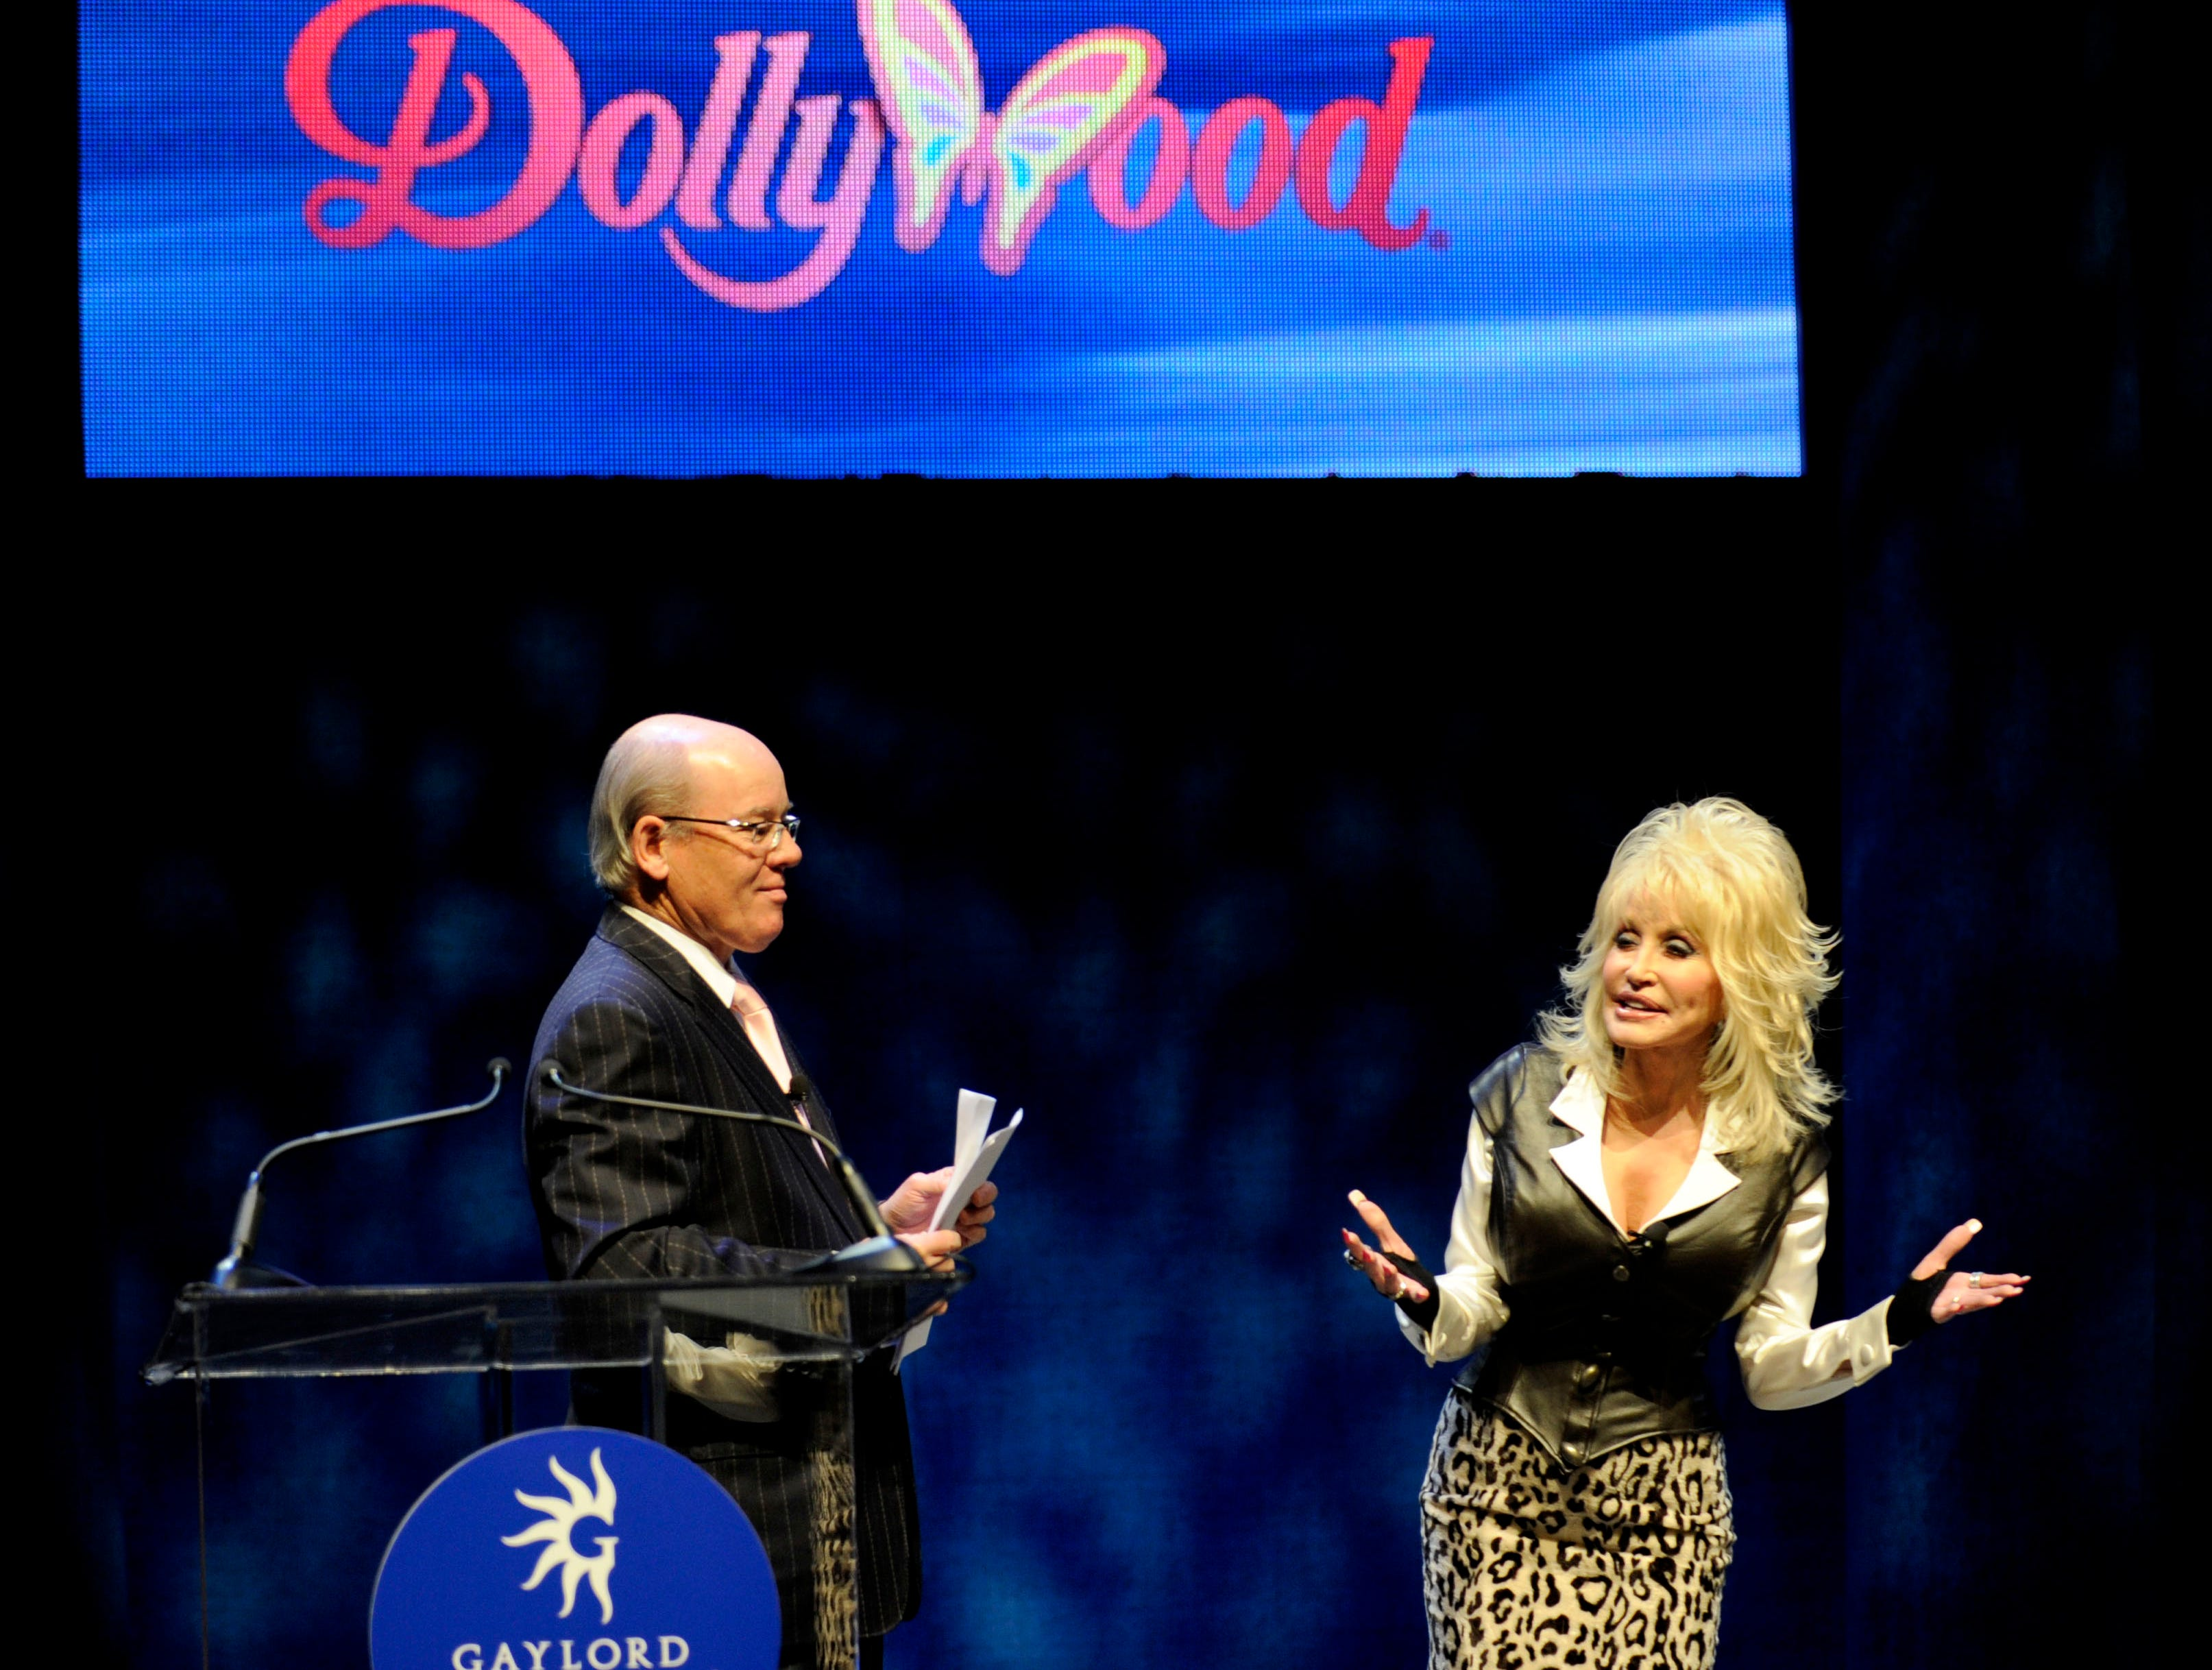 Dolly Parton stands on stage with Gaylord Entertainment CEO Colin Reed as they announced Thursday, Jan. 19, 2012 a new water and snow park to be built near the Opryland Hotel in Nashville.